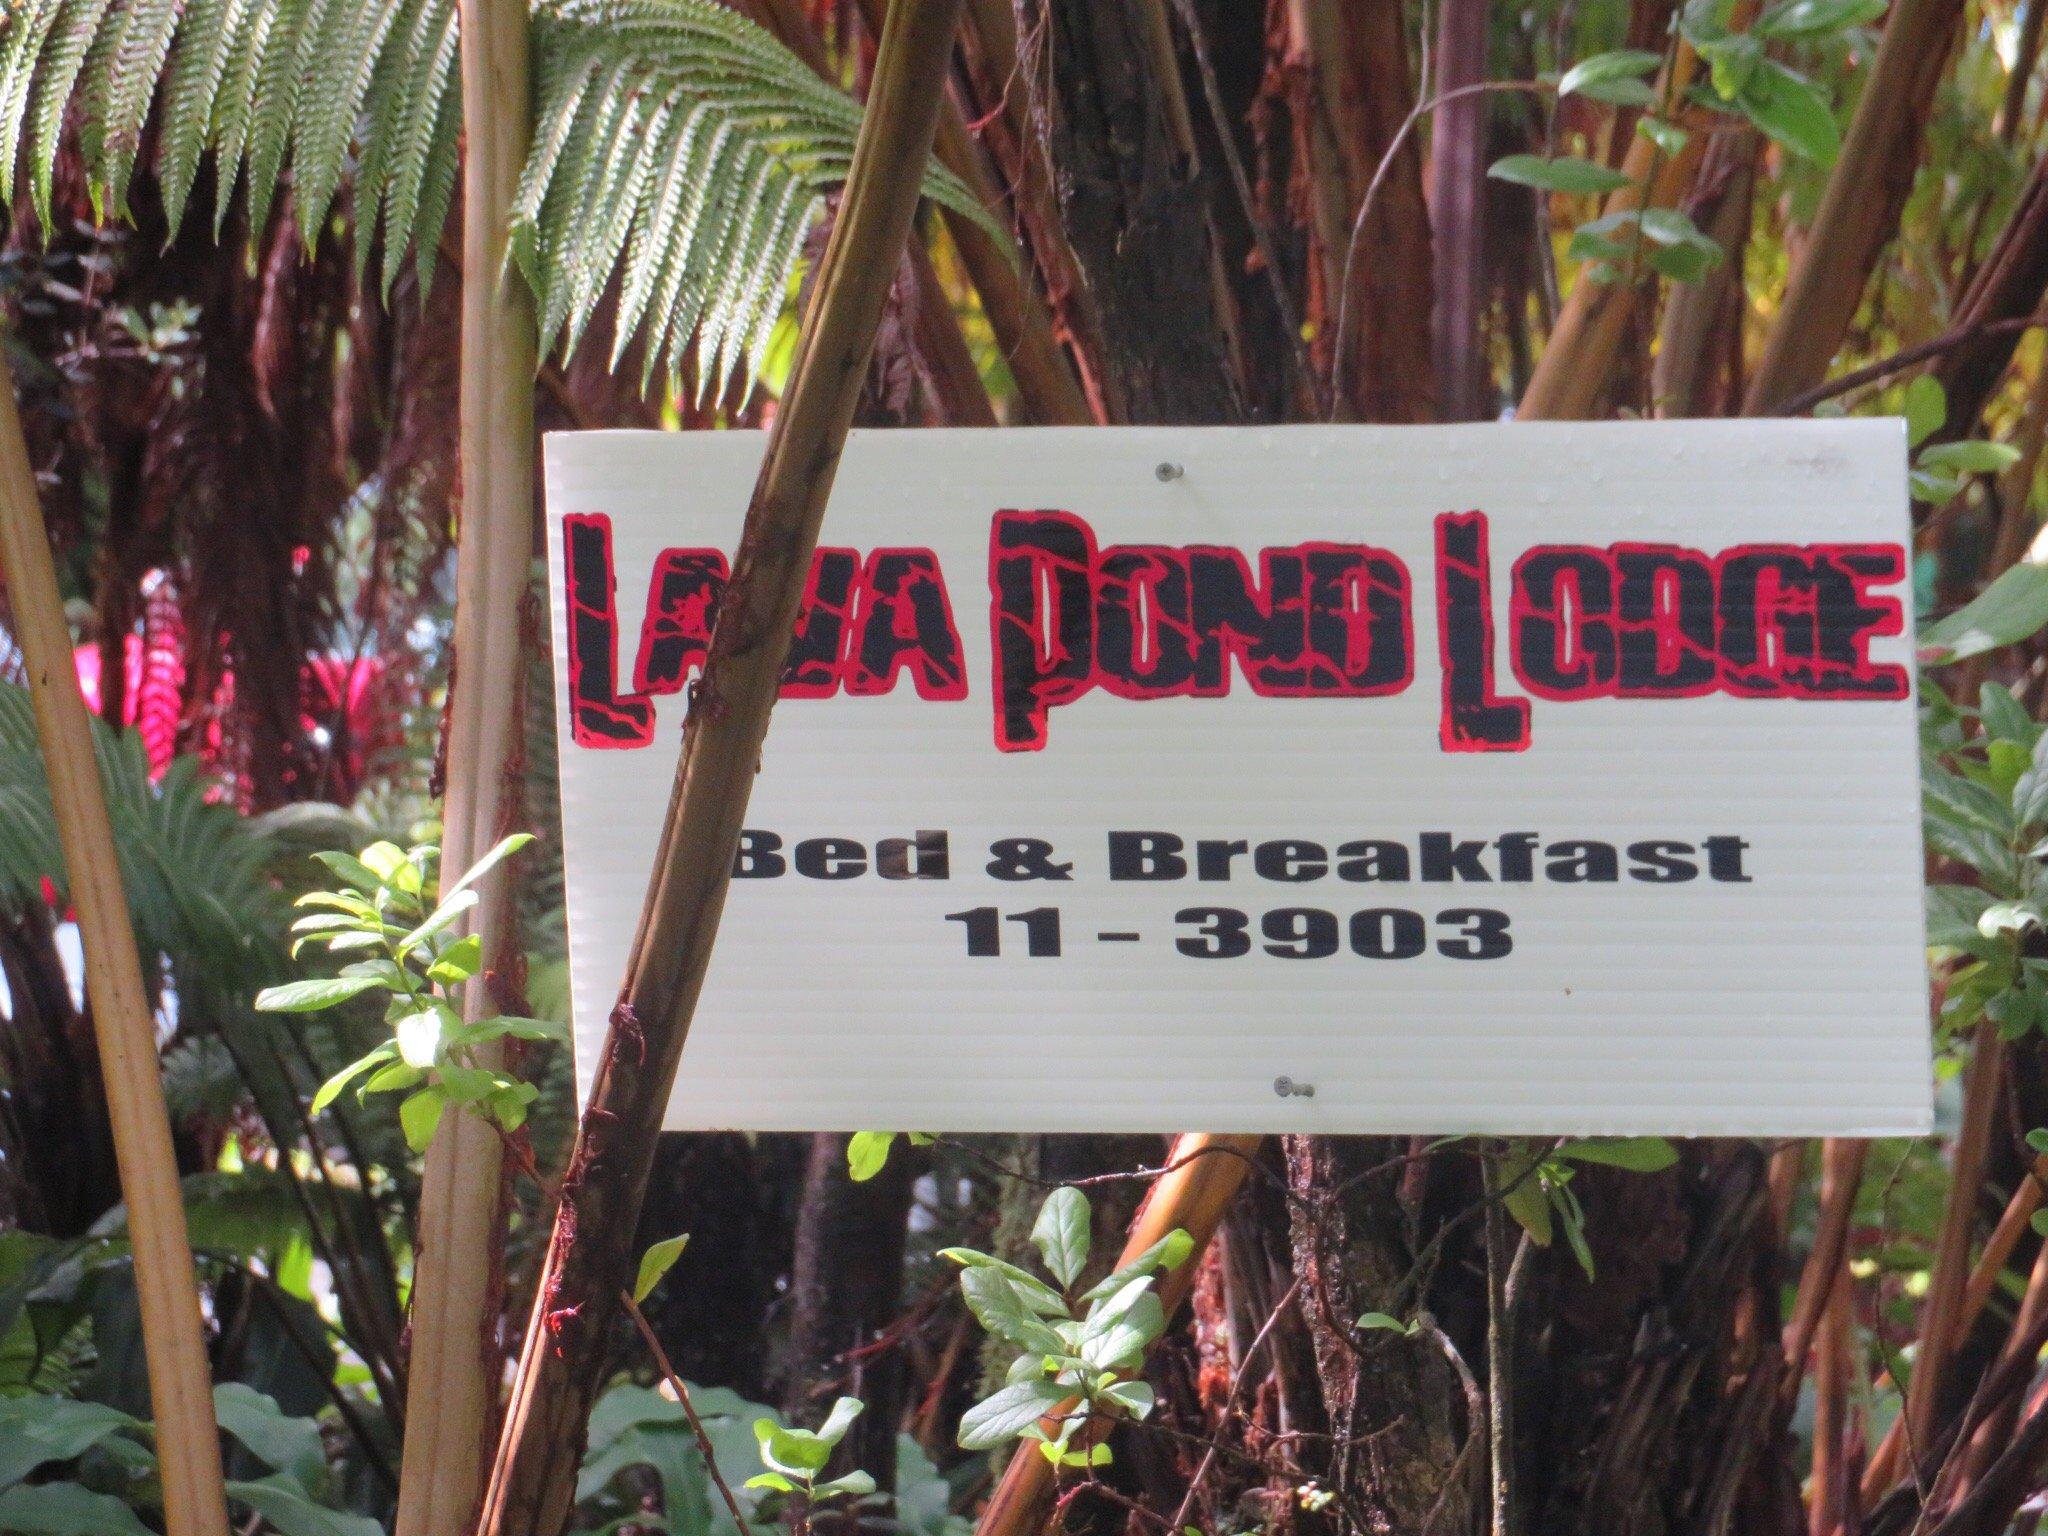 Lava Pond Lodge